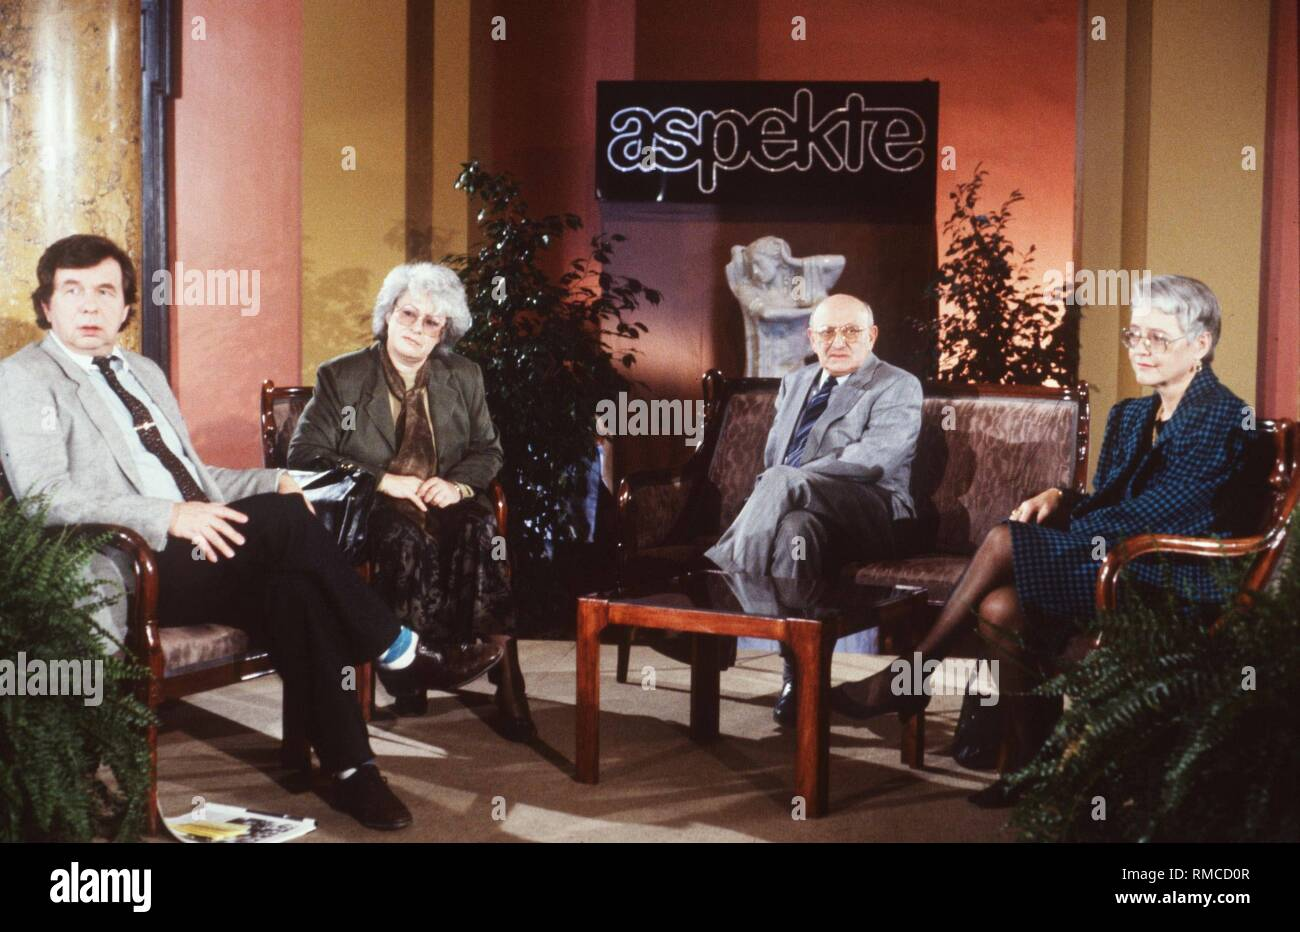 The 'Literary Quartet' with (from left) Helmuth Karasek, Sigrid Loeffler, German author and literary critic Marcel Reich-Ranicki, and Klara Obermueller. - Stock Image